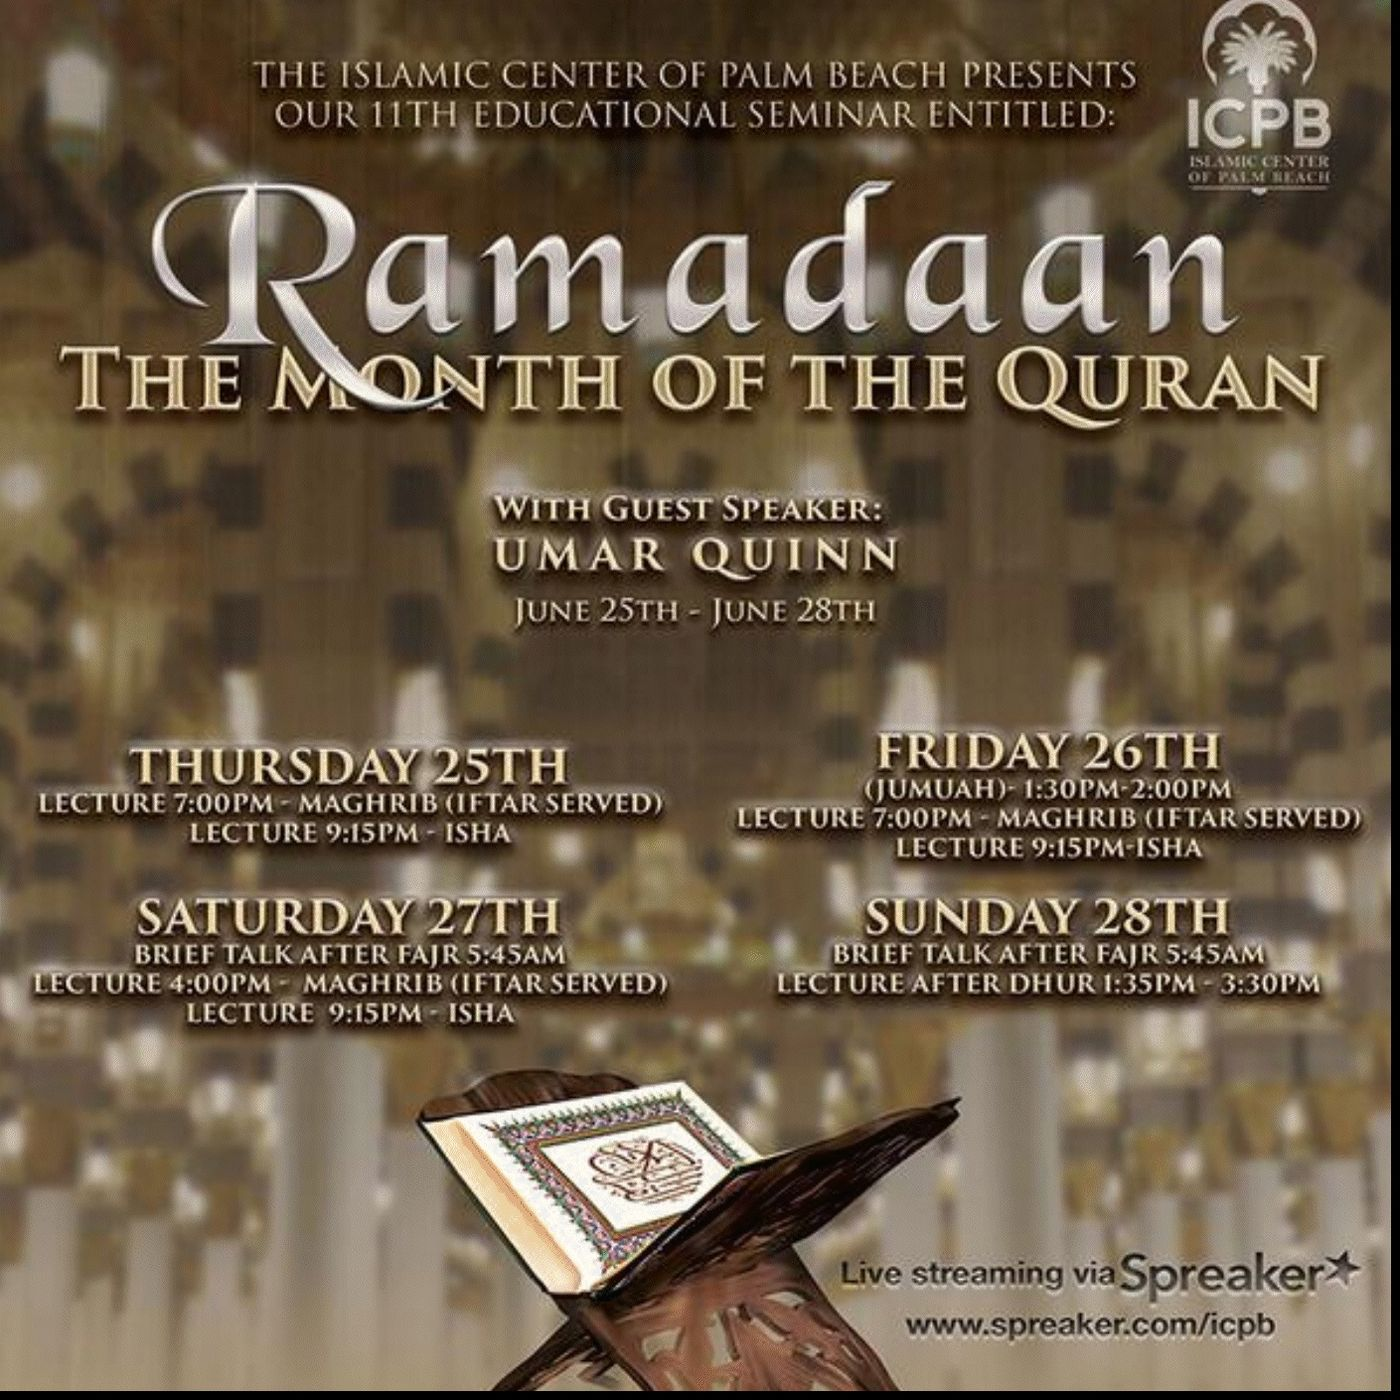 Ramadan - The Month of the Quran